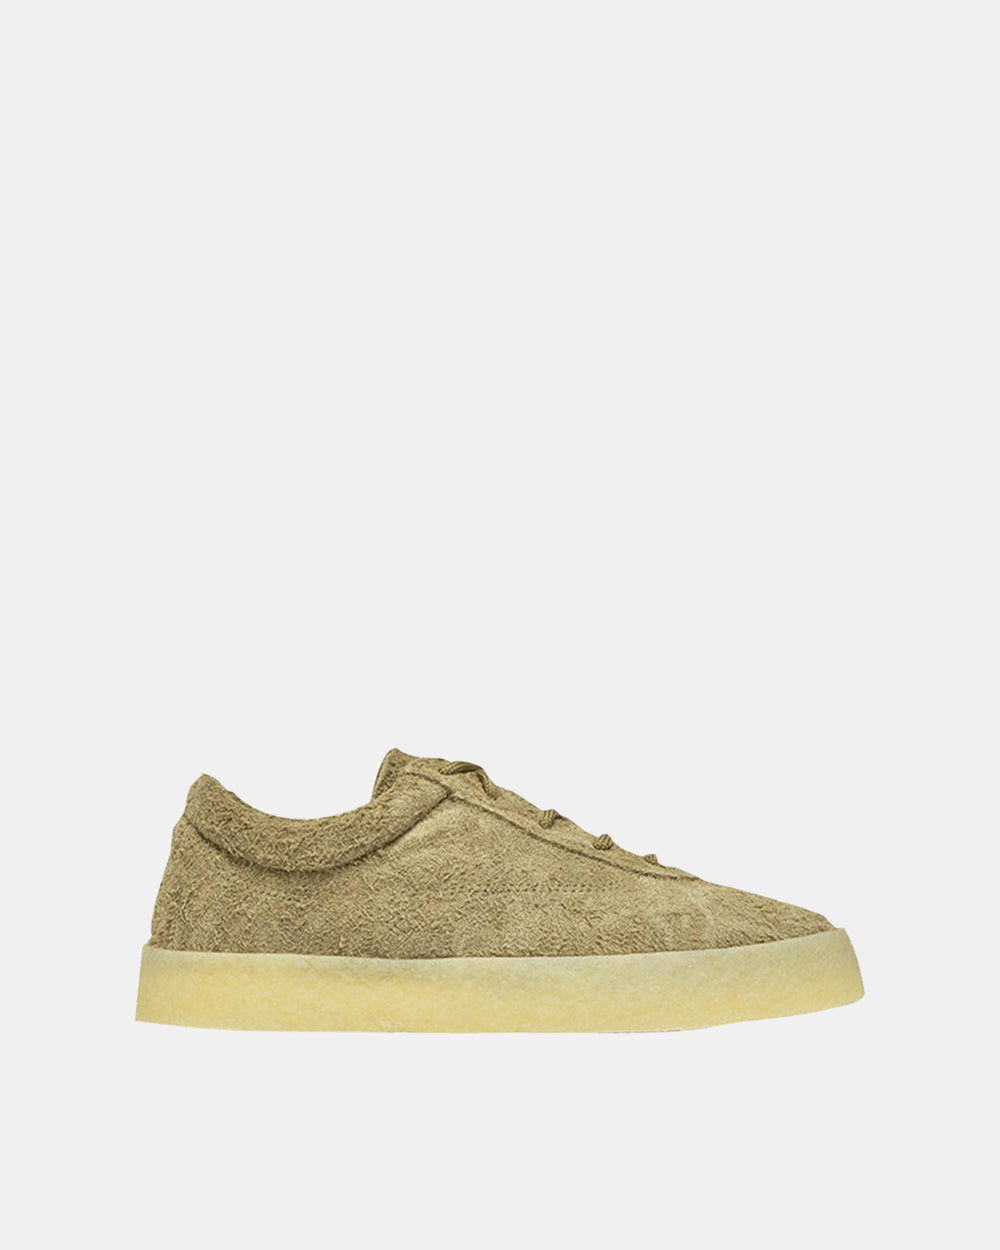 Yeezy - Women's Crepe Shaggy Suede Sneaker (Taupe)